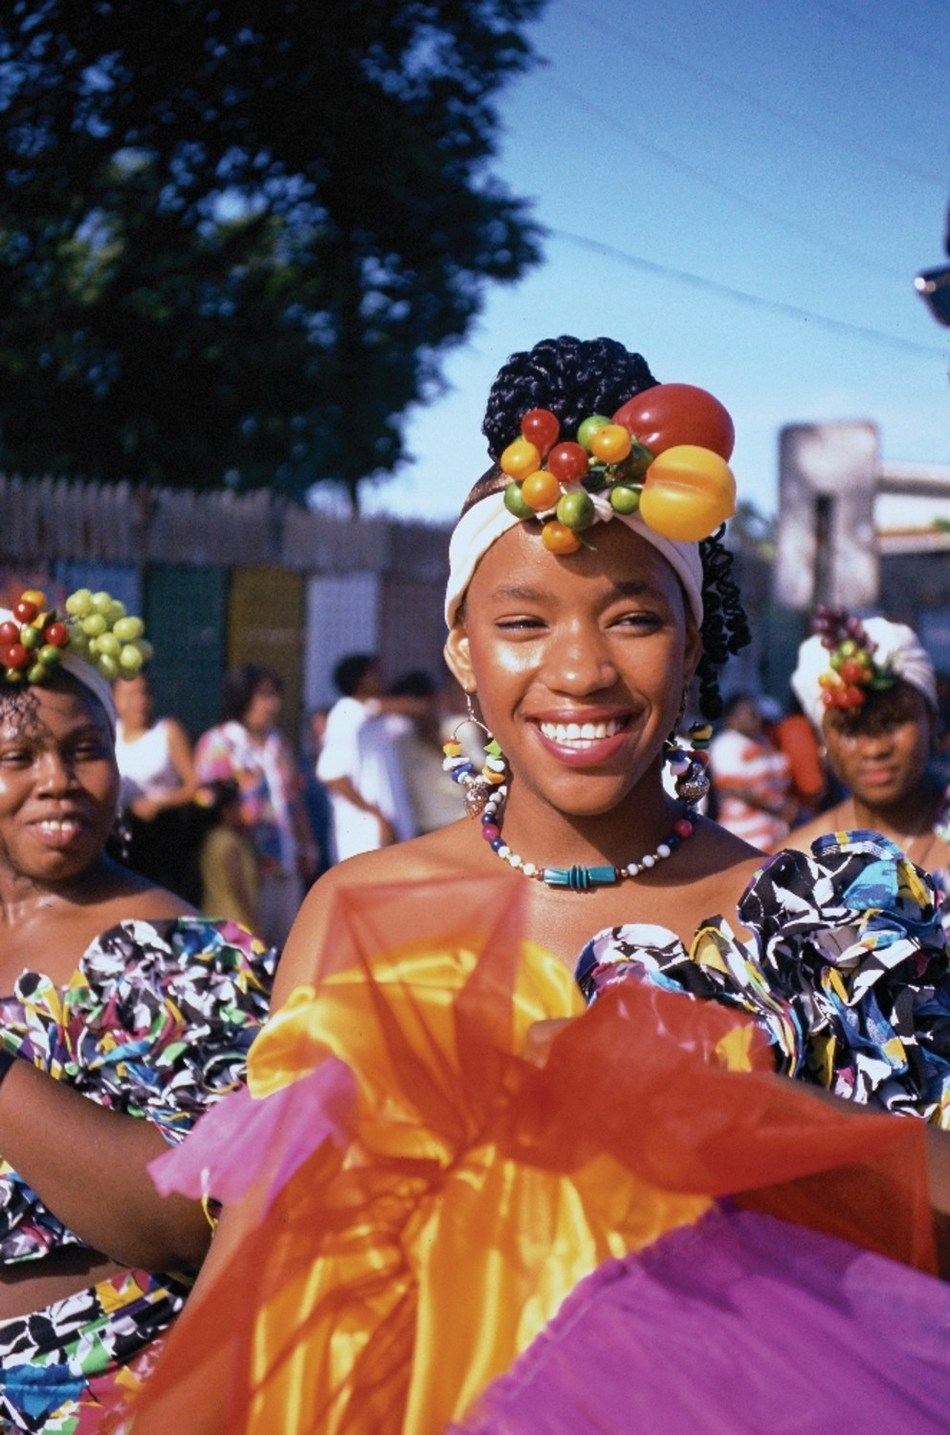 During the holiday season, Costa Rica comes to life in colorful ways with festivals galore.